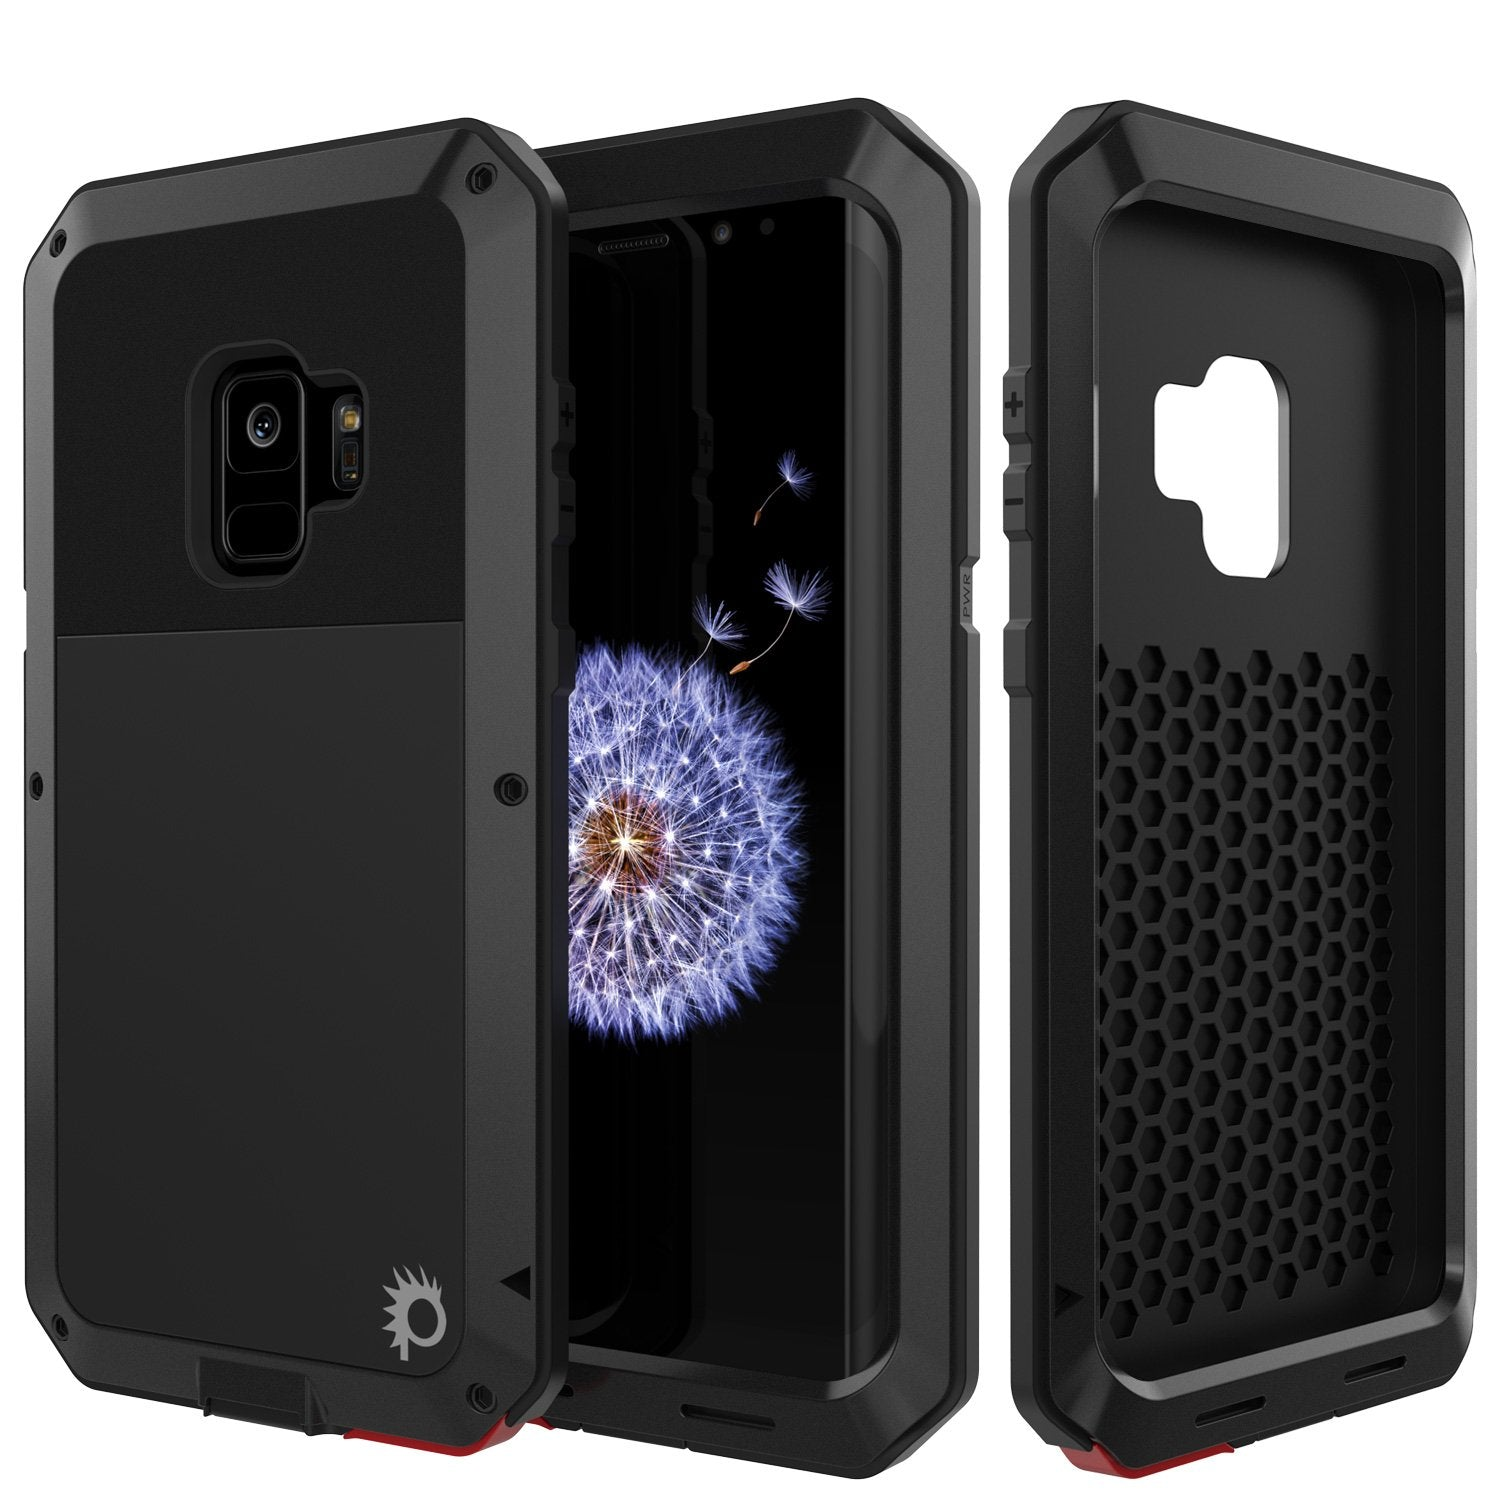 Galaxy S9 Metal Case, Heavy Duty Military Grade Rugged case [Black]